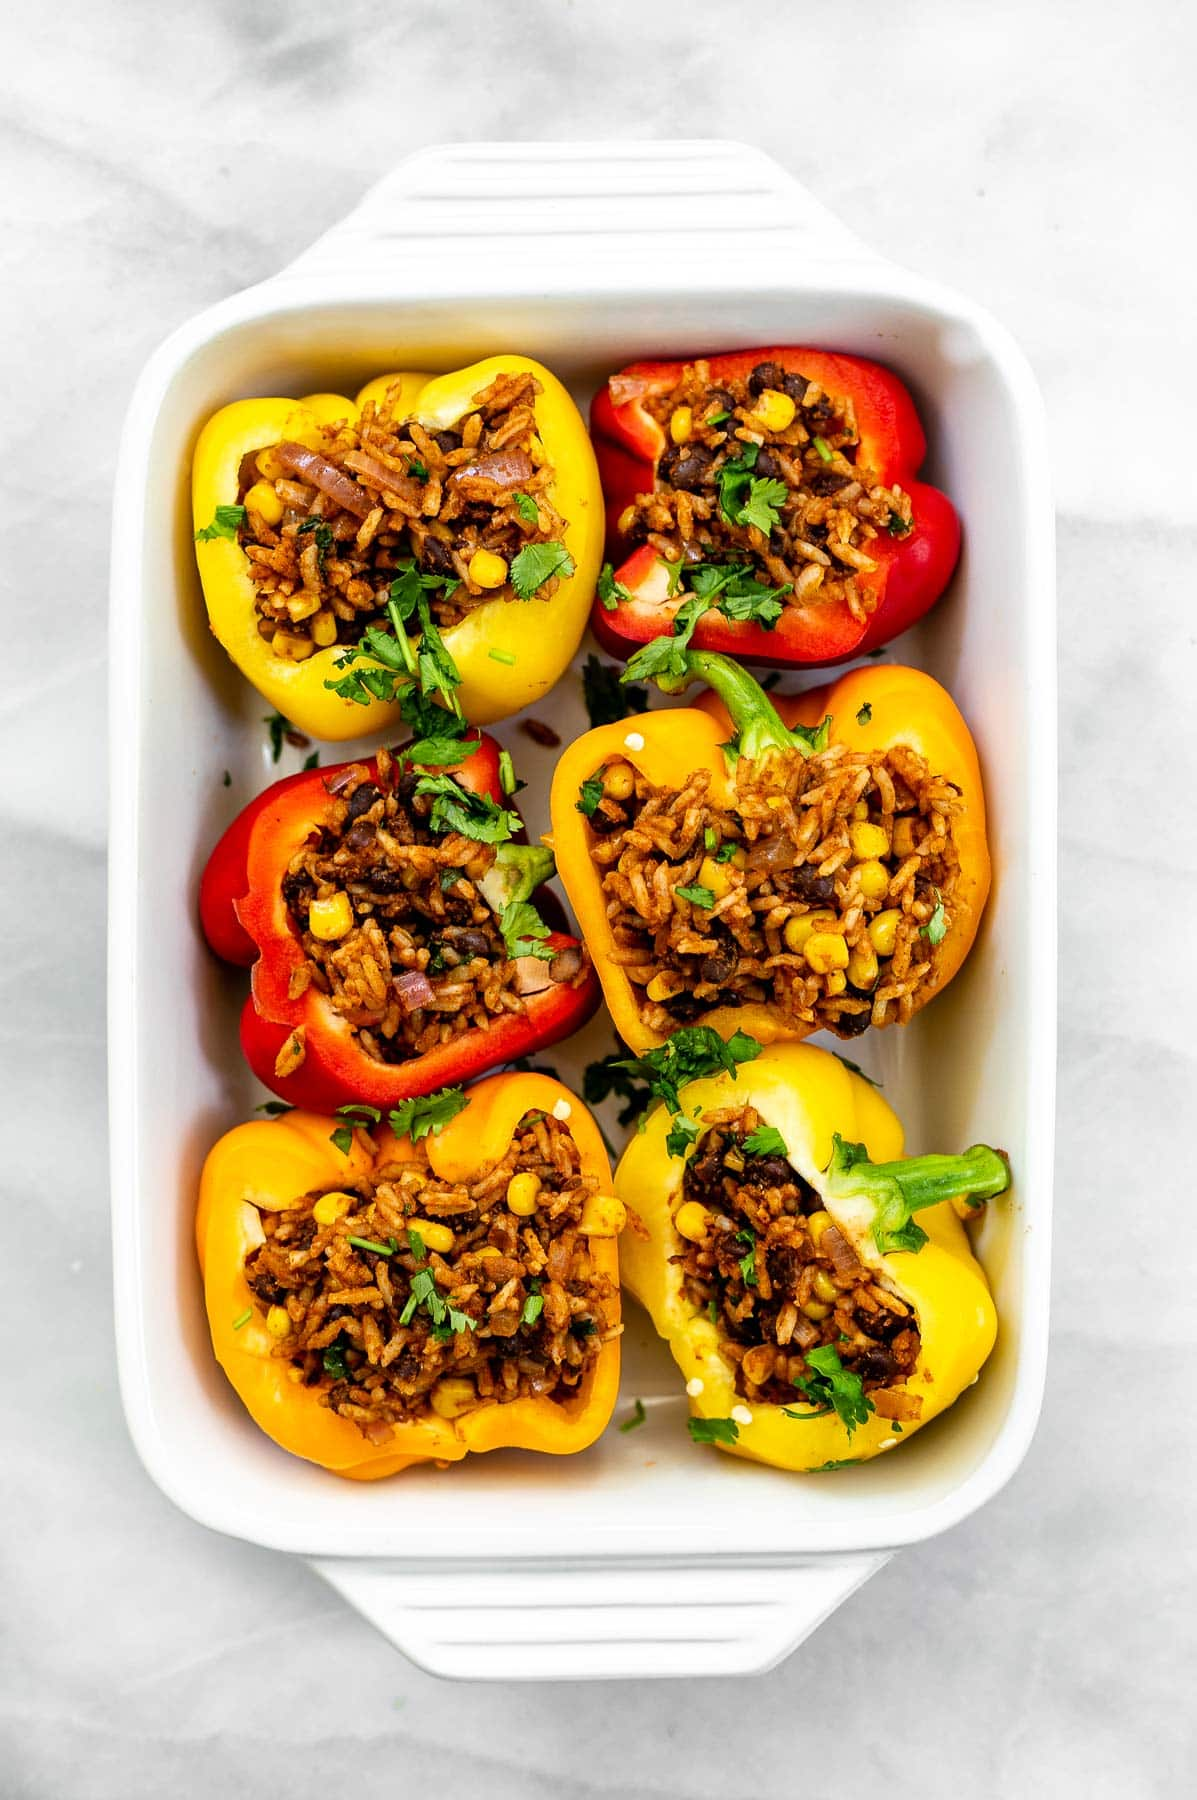 Vegan stuffed peppers before going in the oven.